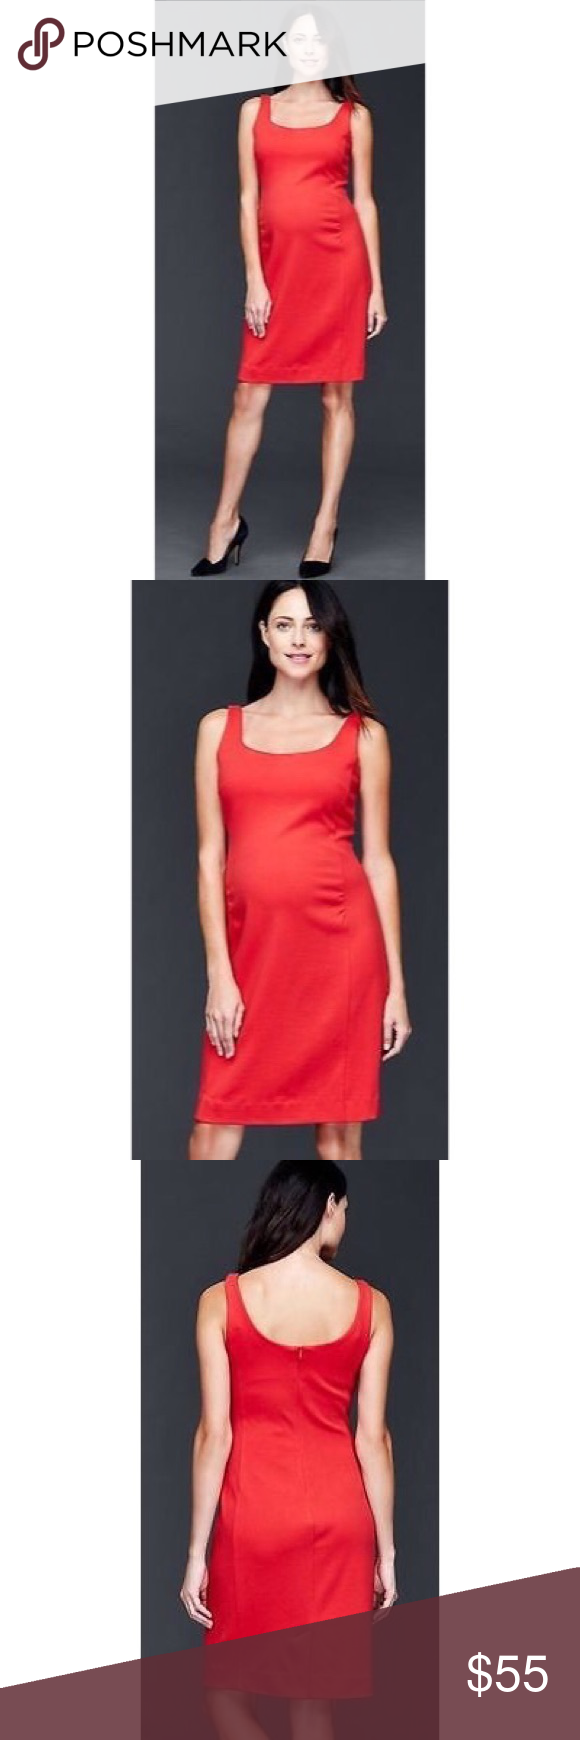 Nwt gap maternity dress nwt maternity dresses and red color nwt gap maternity dress nwt ombrellifo Gallery